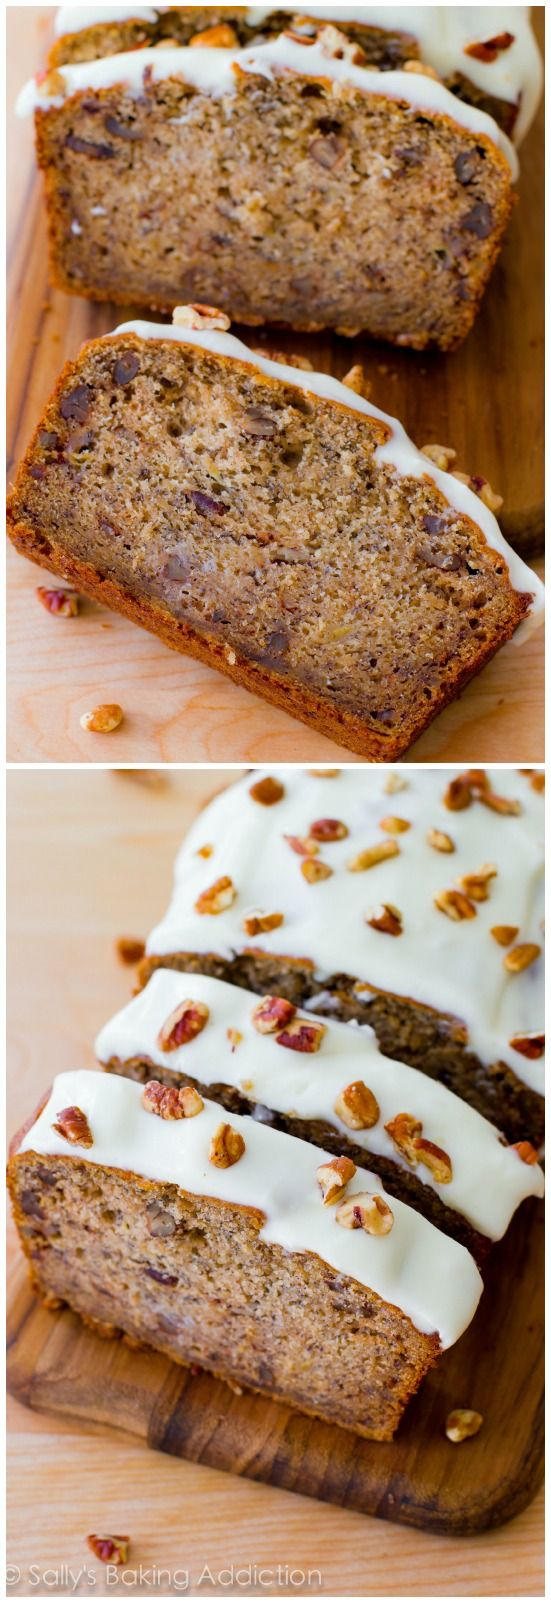 Best-Ever Banana Bread - 4 bananas and brown sugar make it extra moist and flavorful!